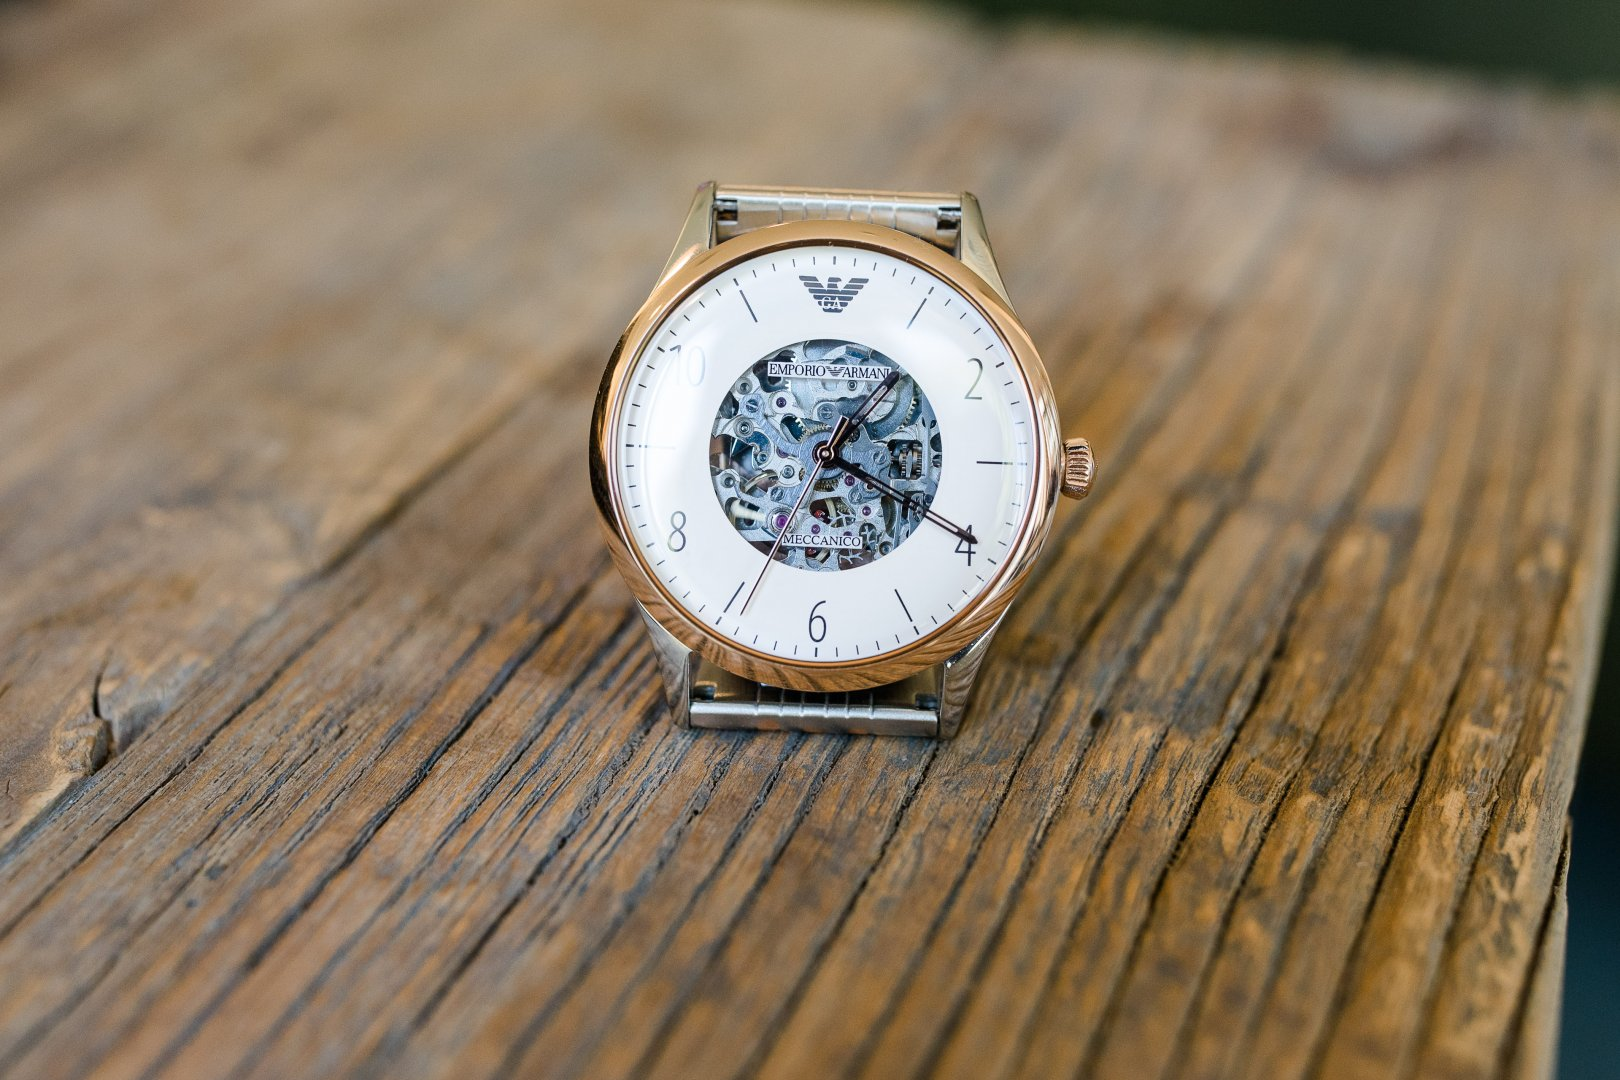 Watch Watch accessory Fashion accessory Jewellery Analog watch Close-up Material property Metal Strap Photography Wood Brand Silver Still life photography Glass